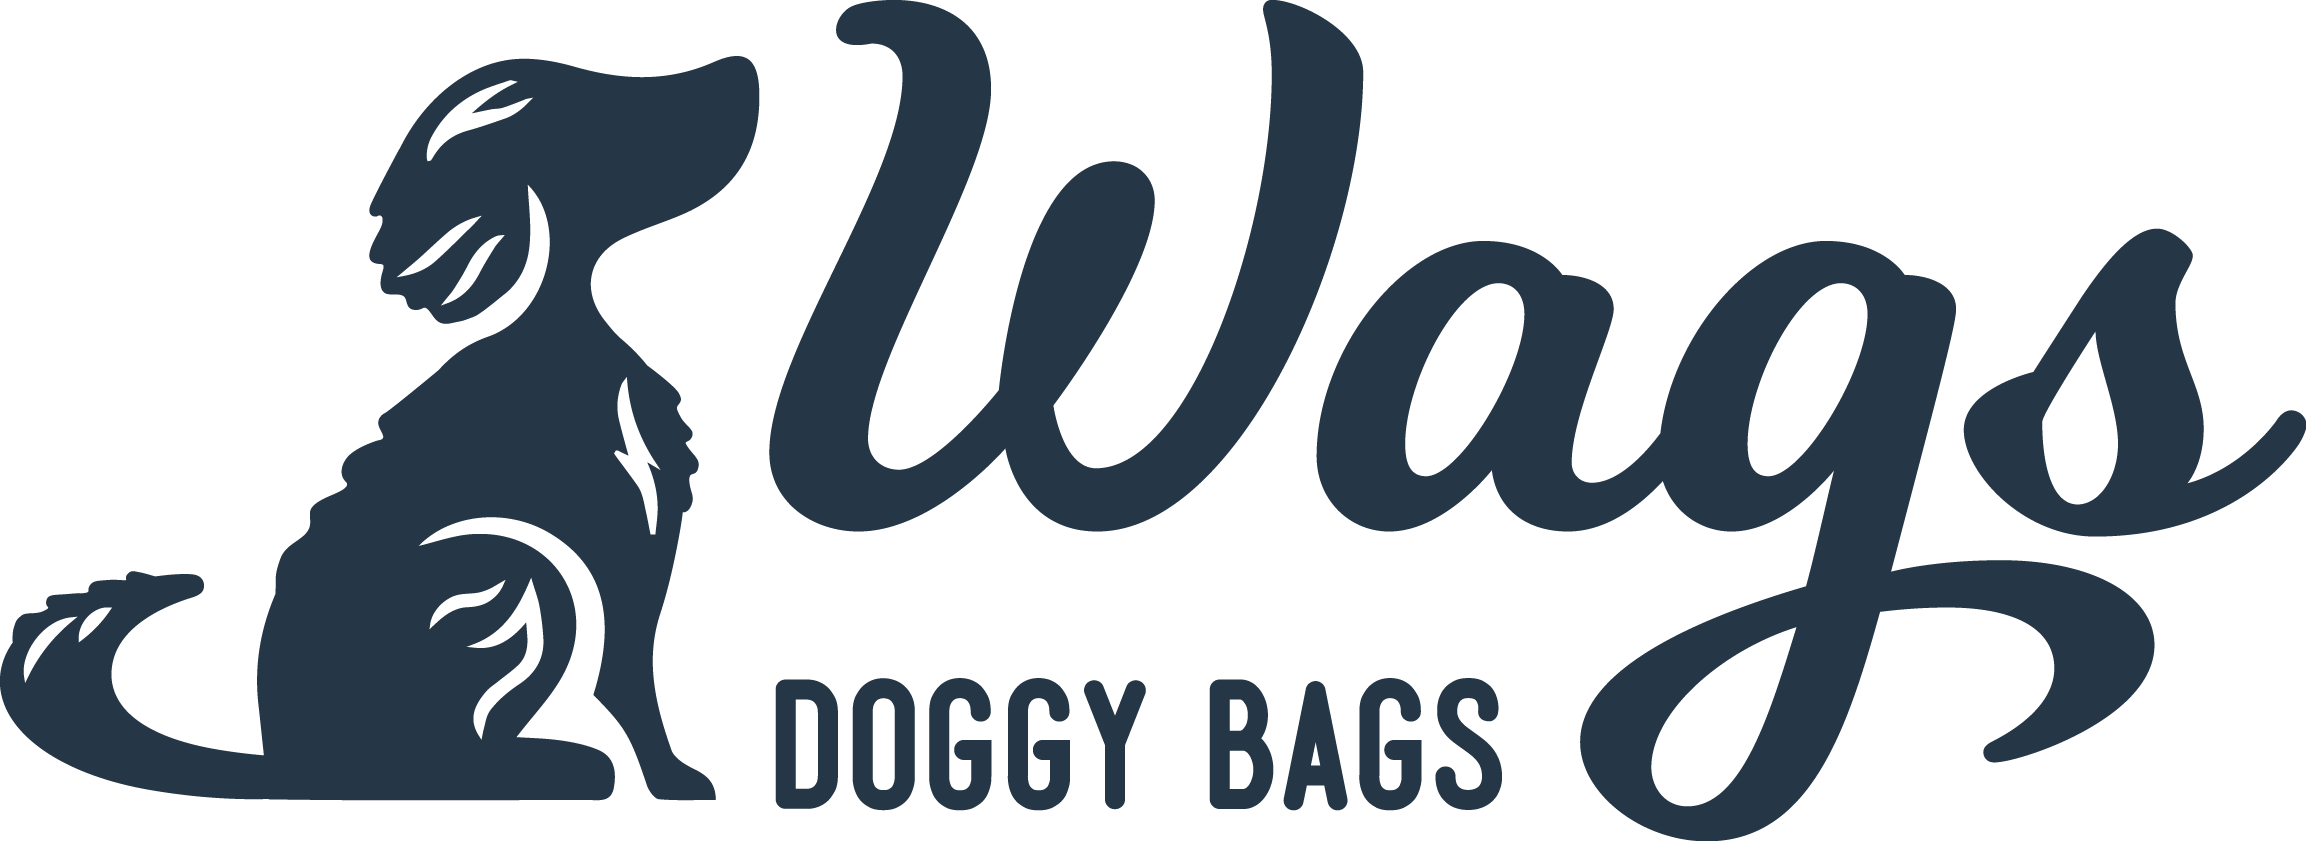 Wags Doggy Bags